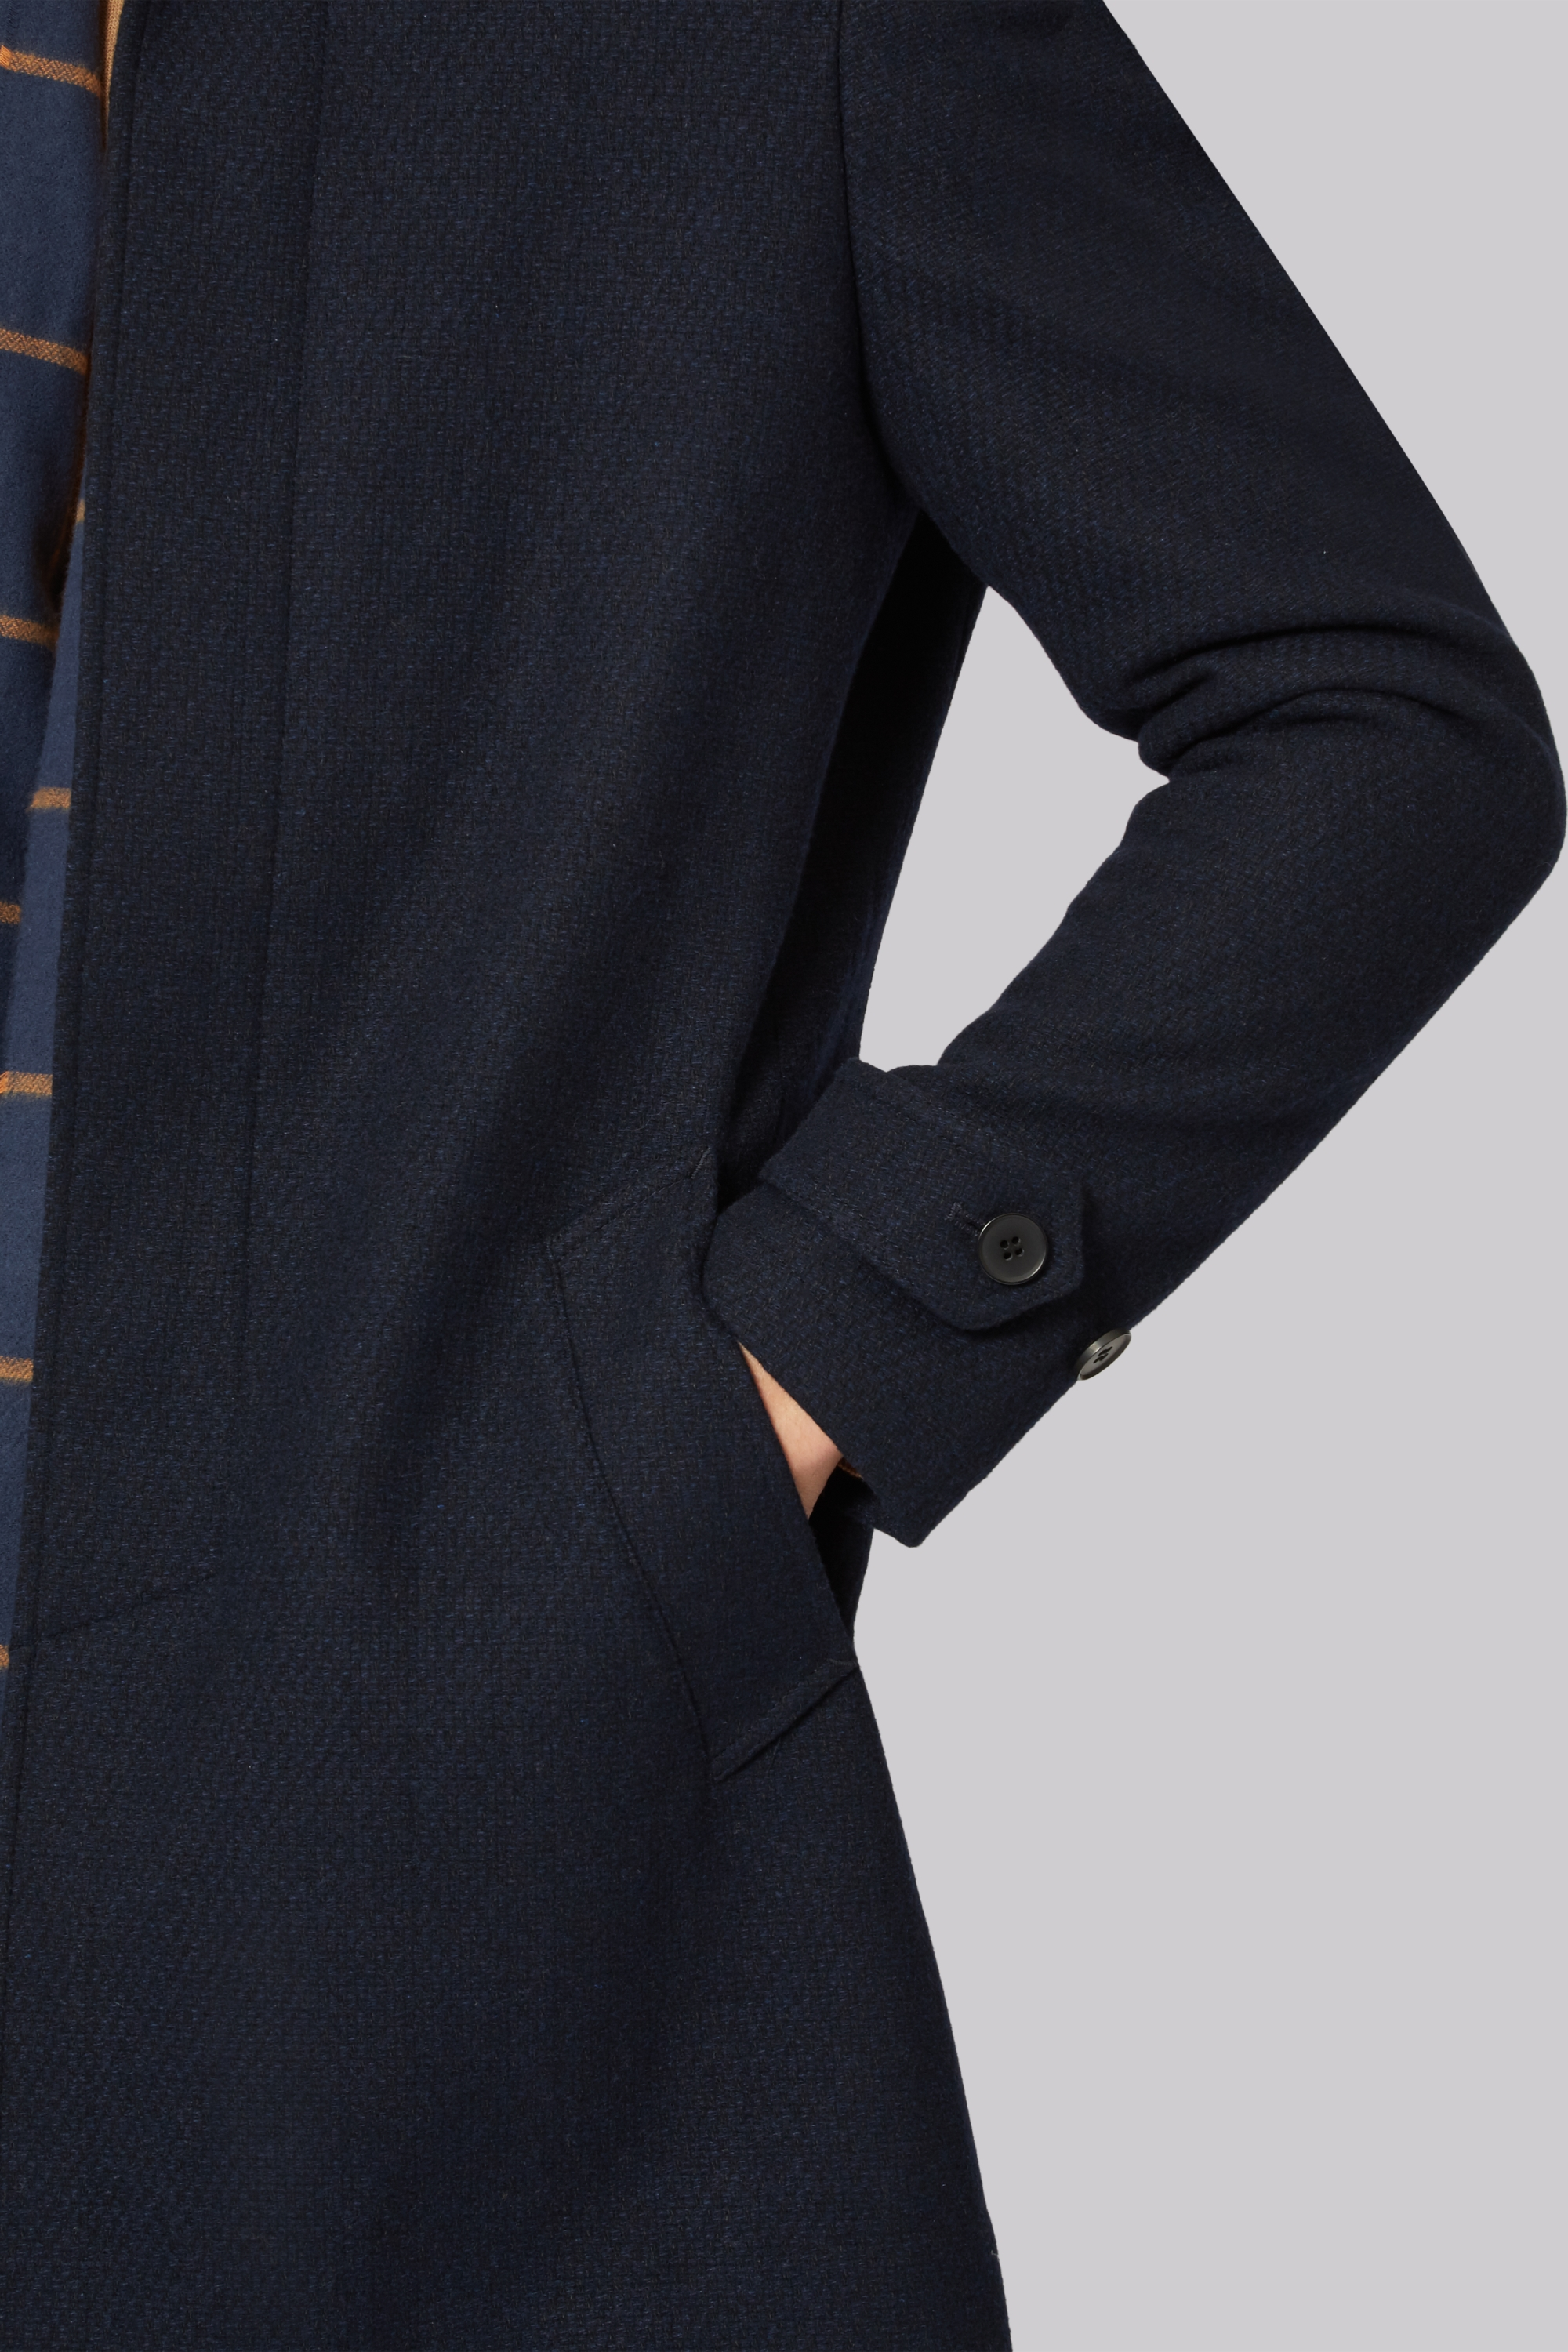 Connection Slim Fit Navy Car Coat